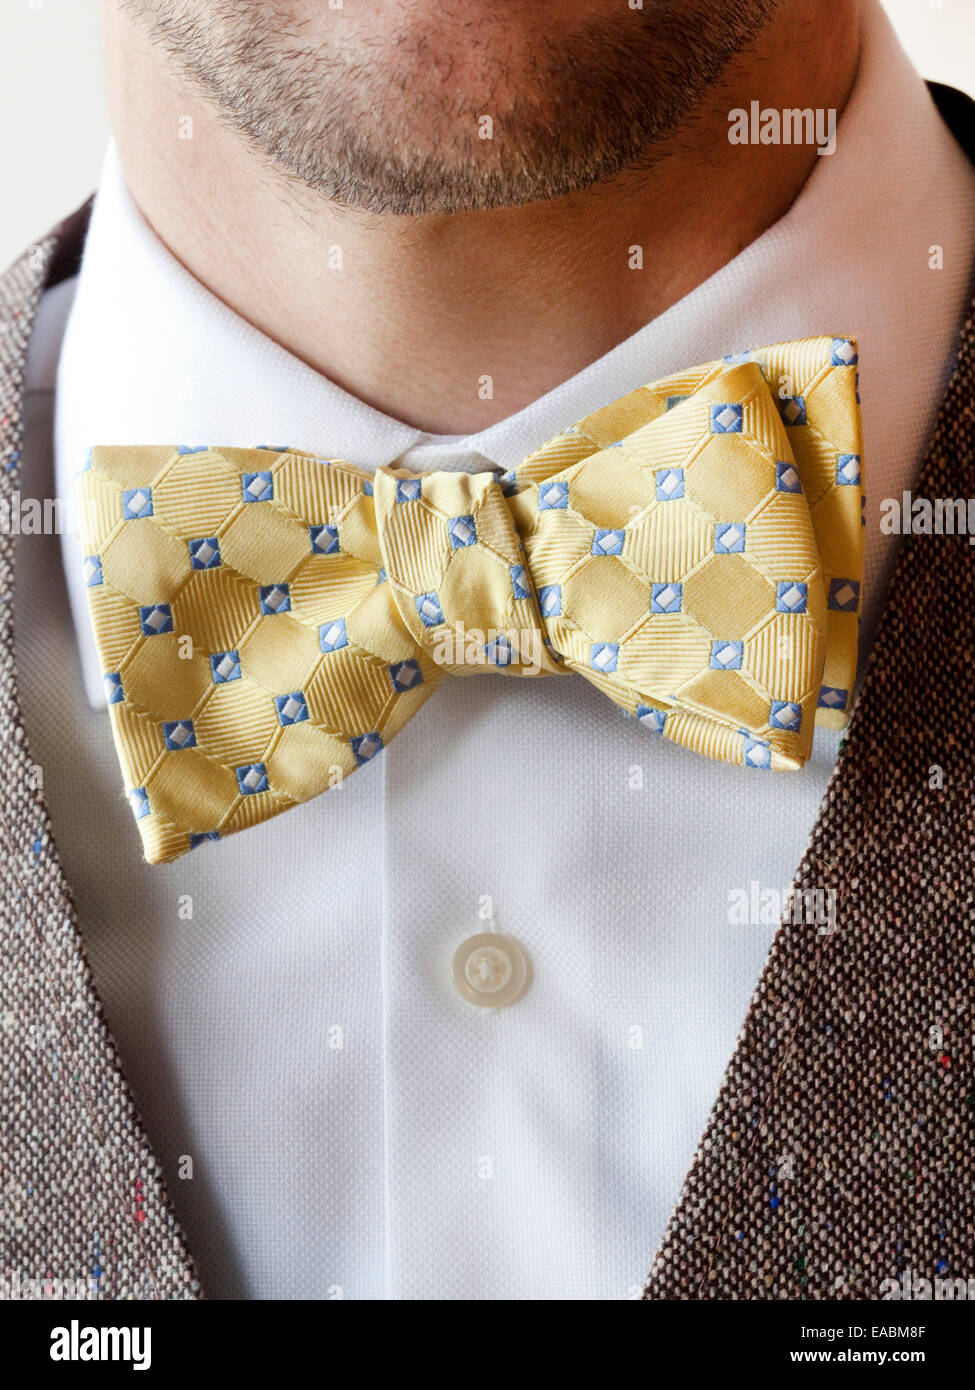 detail of man's yellow bow tie worn with white shirt - Stock Image